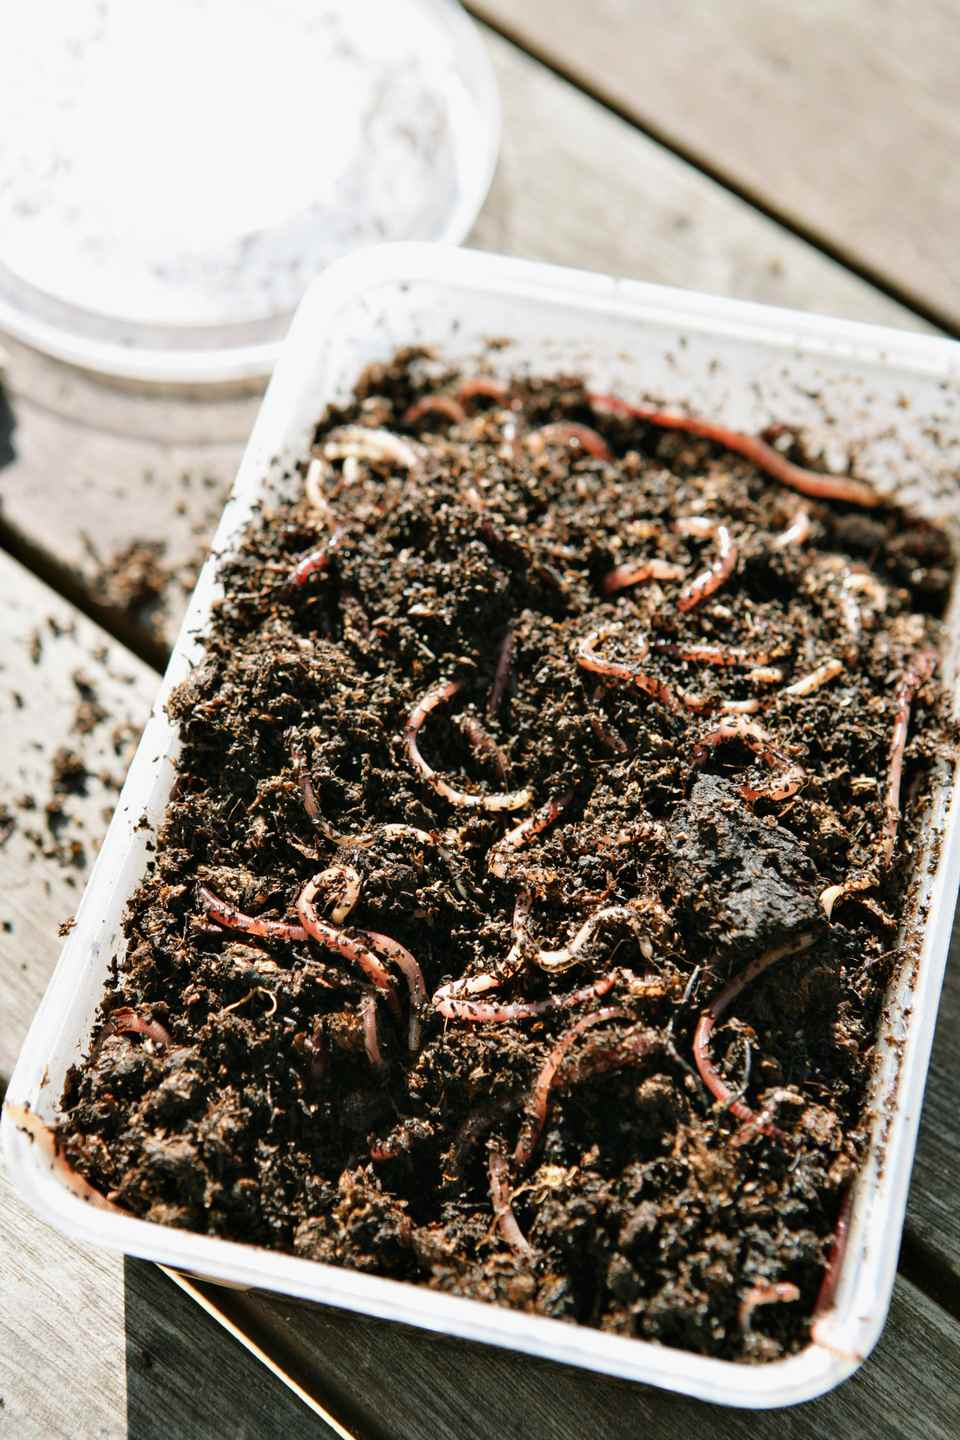 How To Set Up A Worm Bin For Vermicomposting